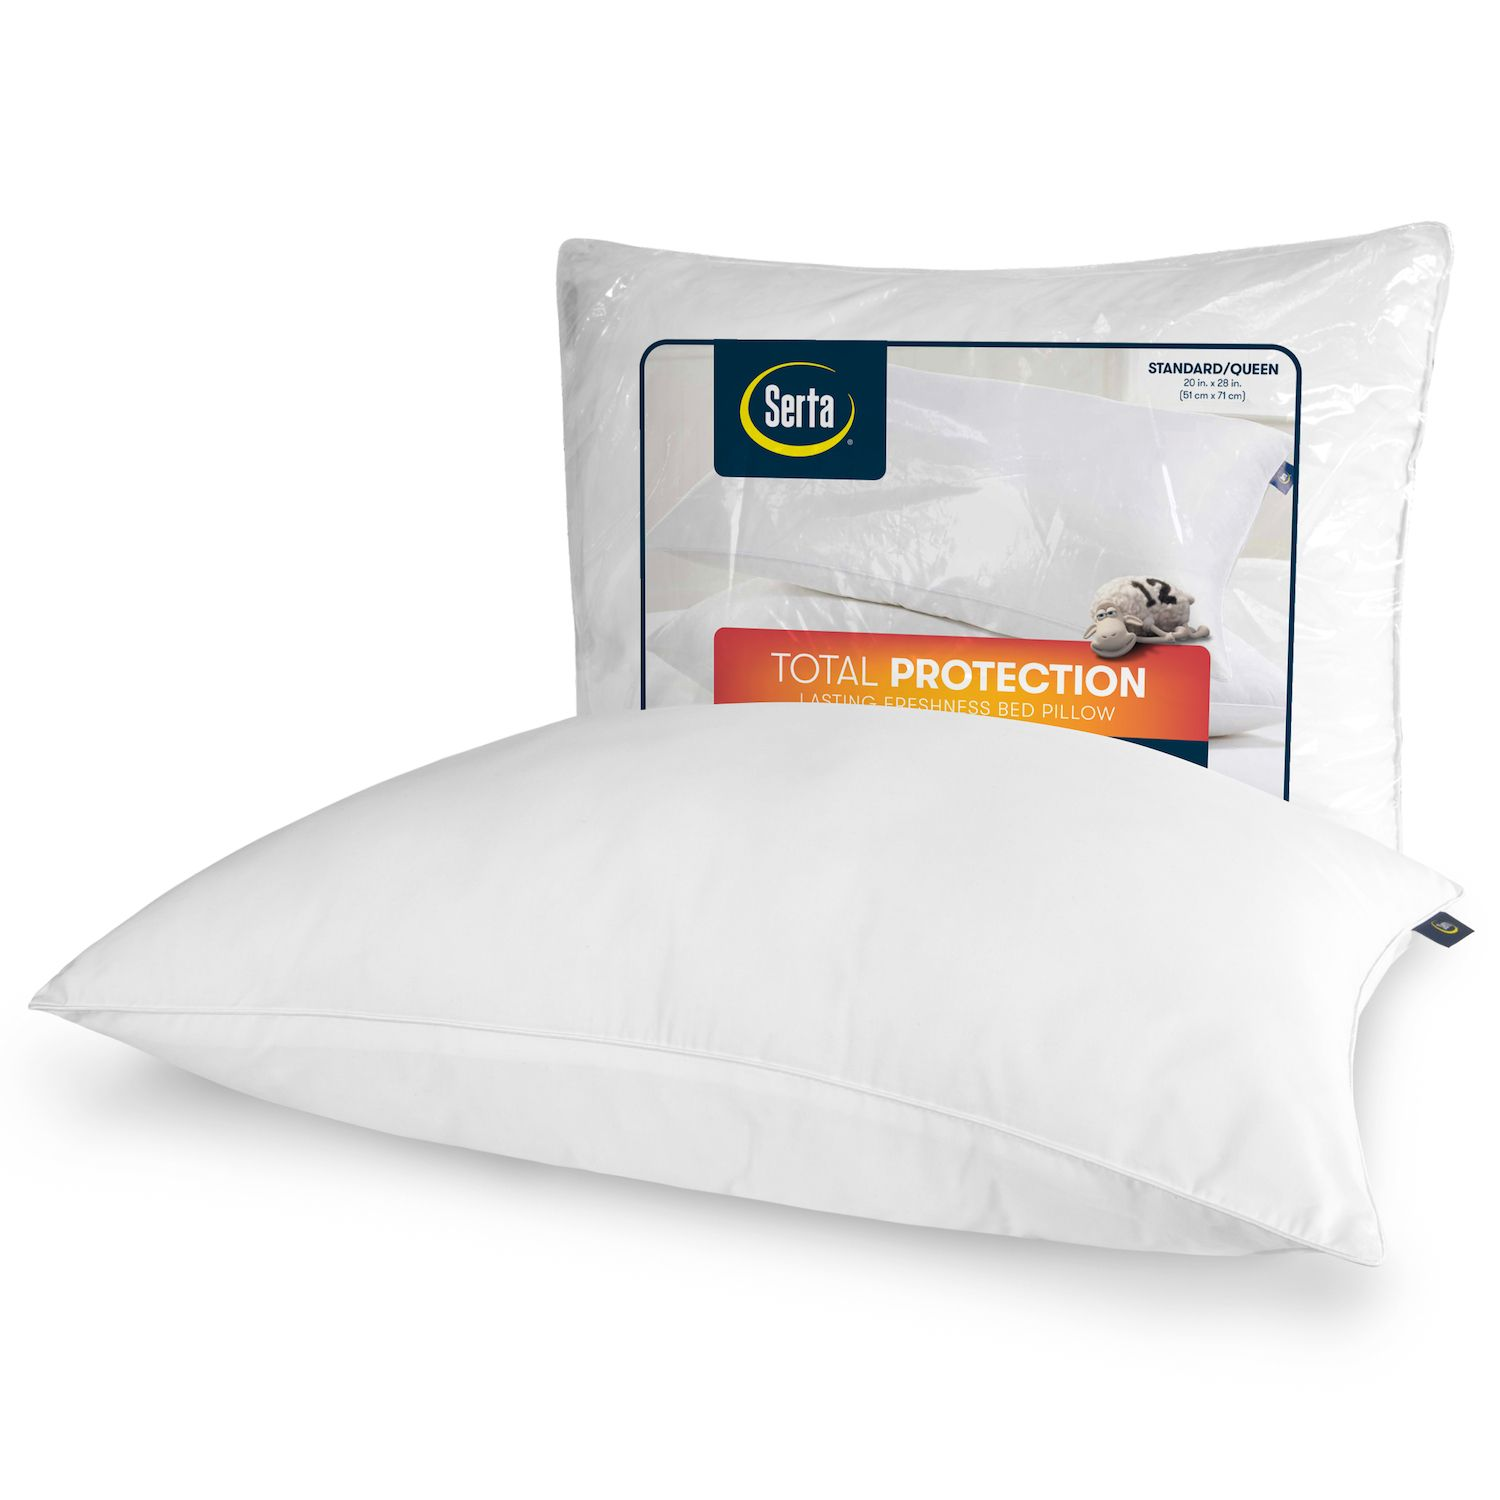 serta total protection bed pillow